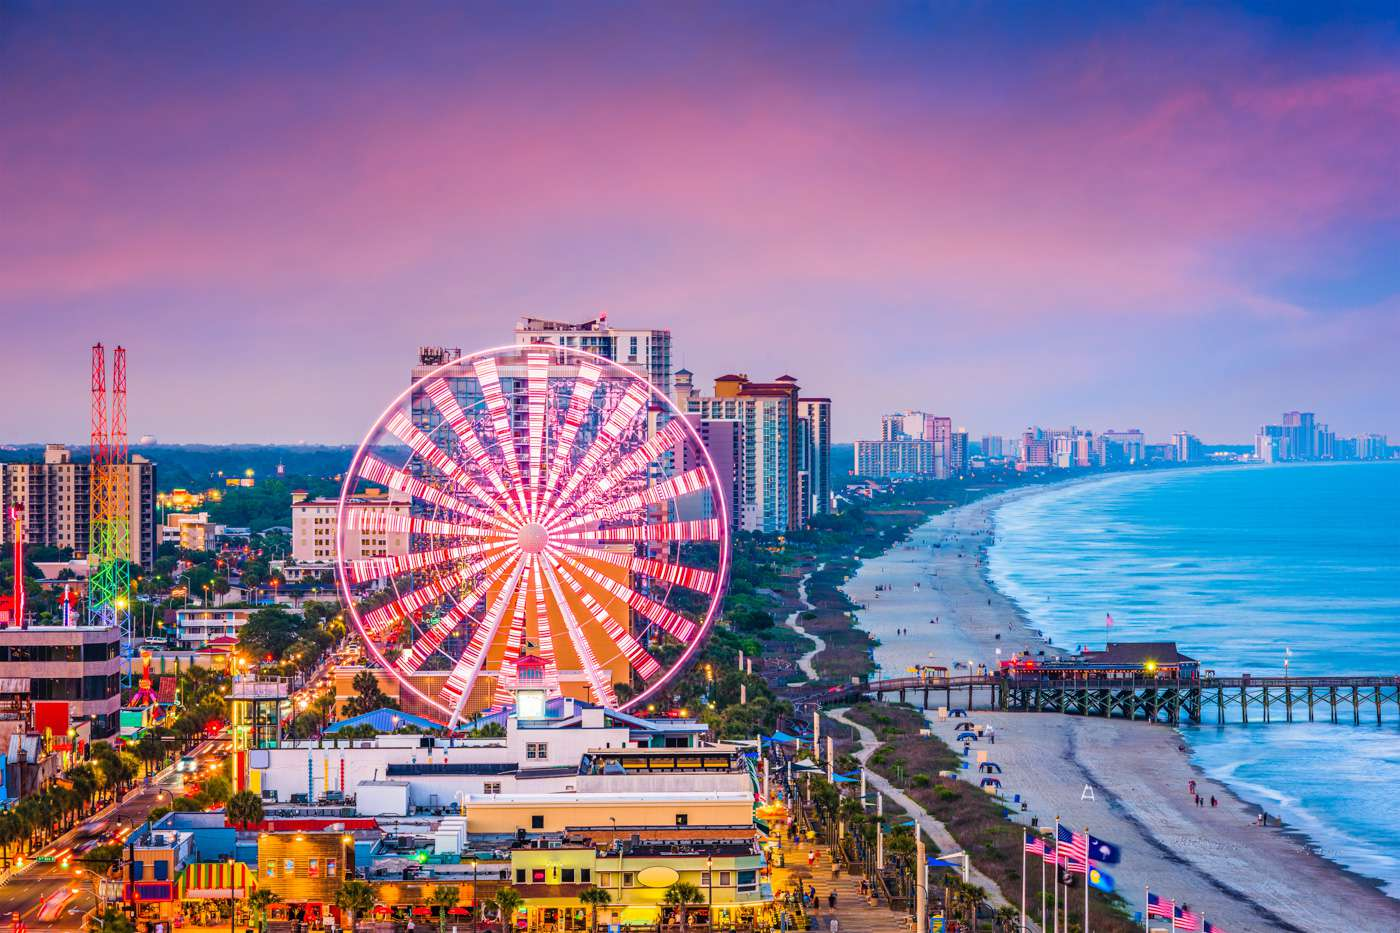 Christmas Parade 2021 Surfside Beach Sc Myrtle Beach Travel Cost Average Price Of A Vacation To Myrtle Beach Food Meal Budget Daily Weekly Expenses Budgetyourtrip Com